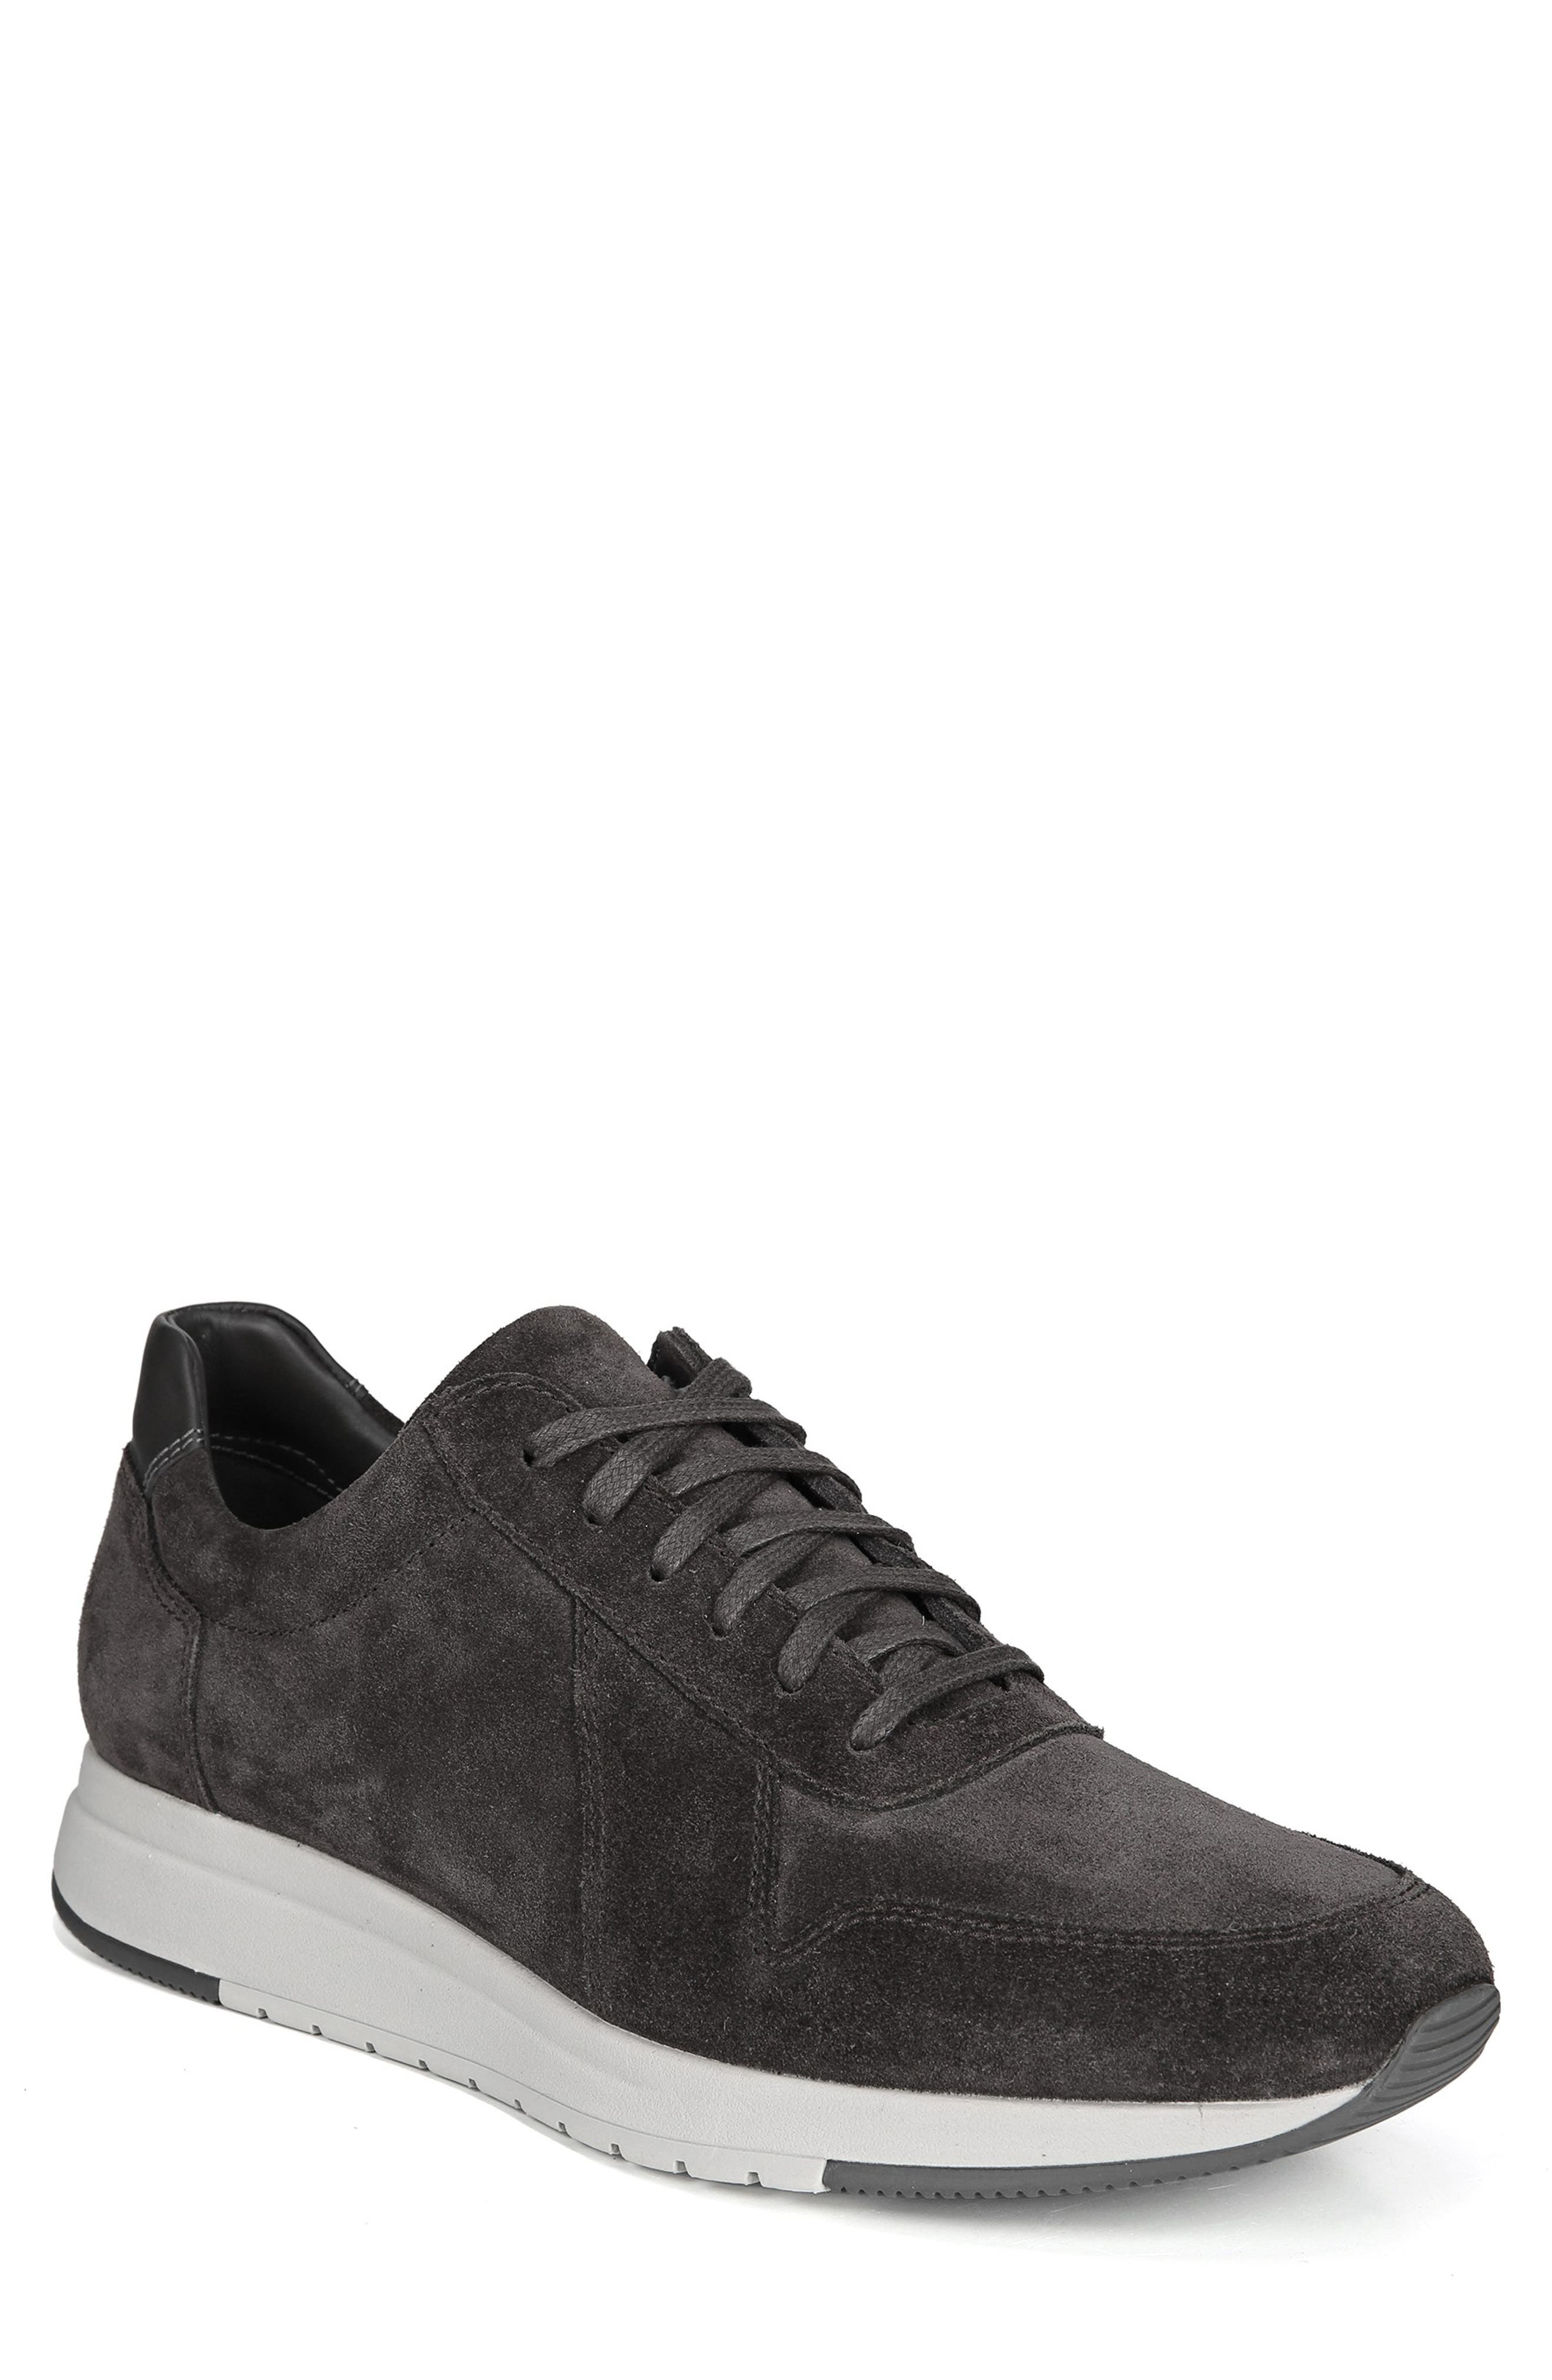 VINCE,                             Pryor Suede Sneaker,                             Main thumbnail 1, color,                             020